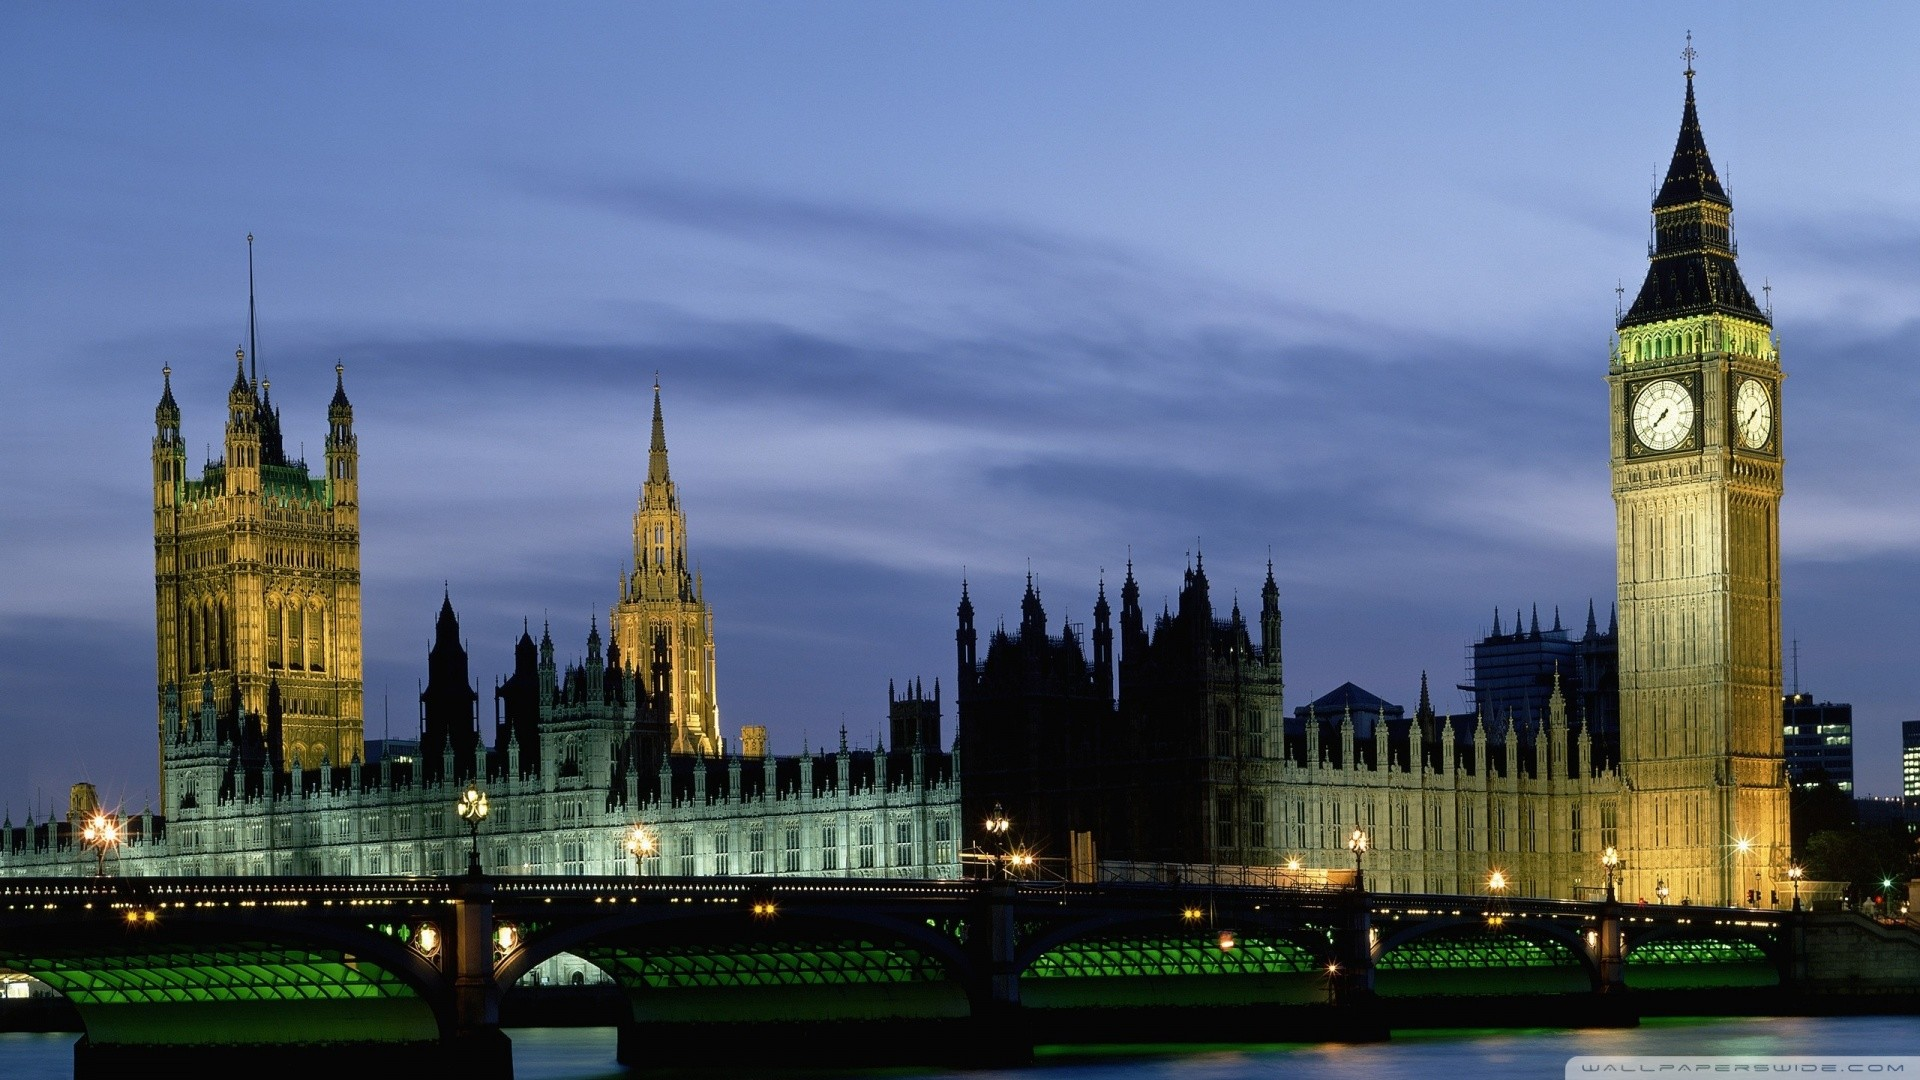 1920x1080 London England full HD  | Houses Of Parliament And Big Ben London  Uk Europe Wallpaper